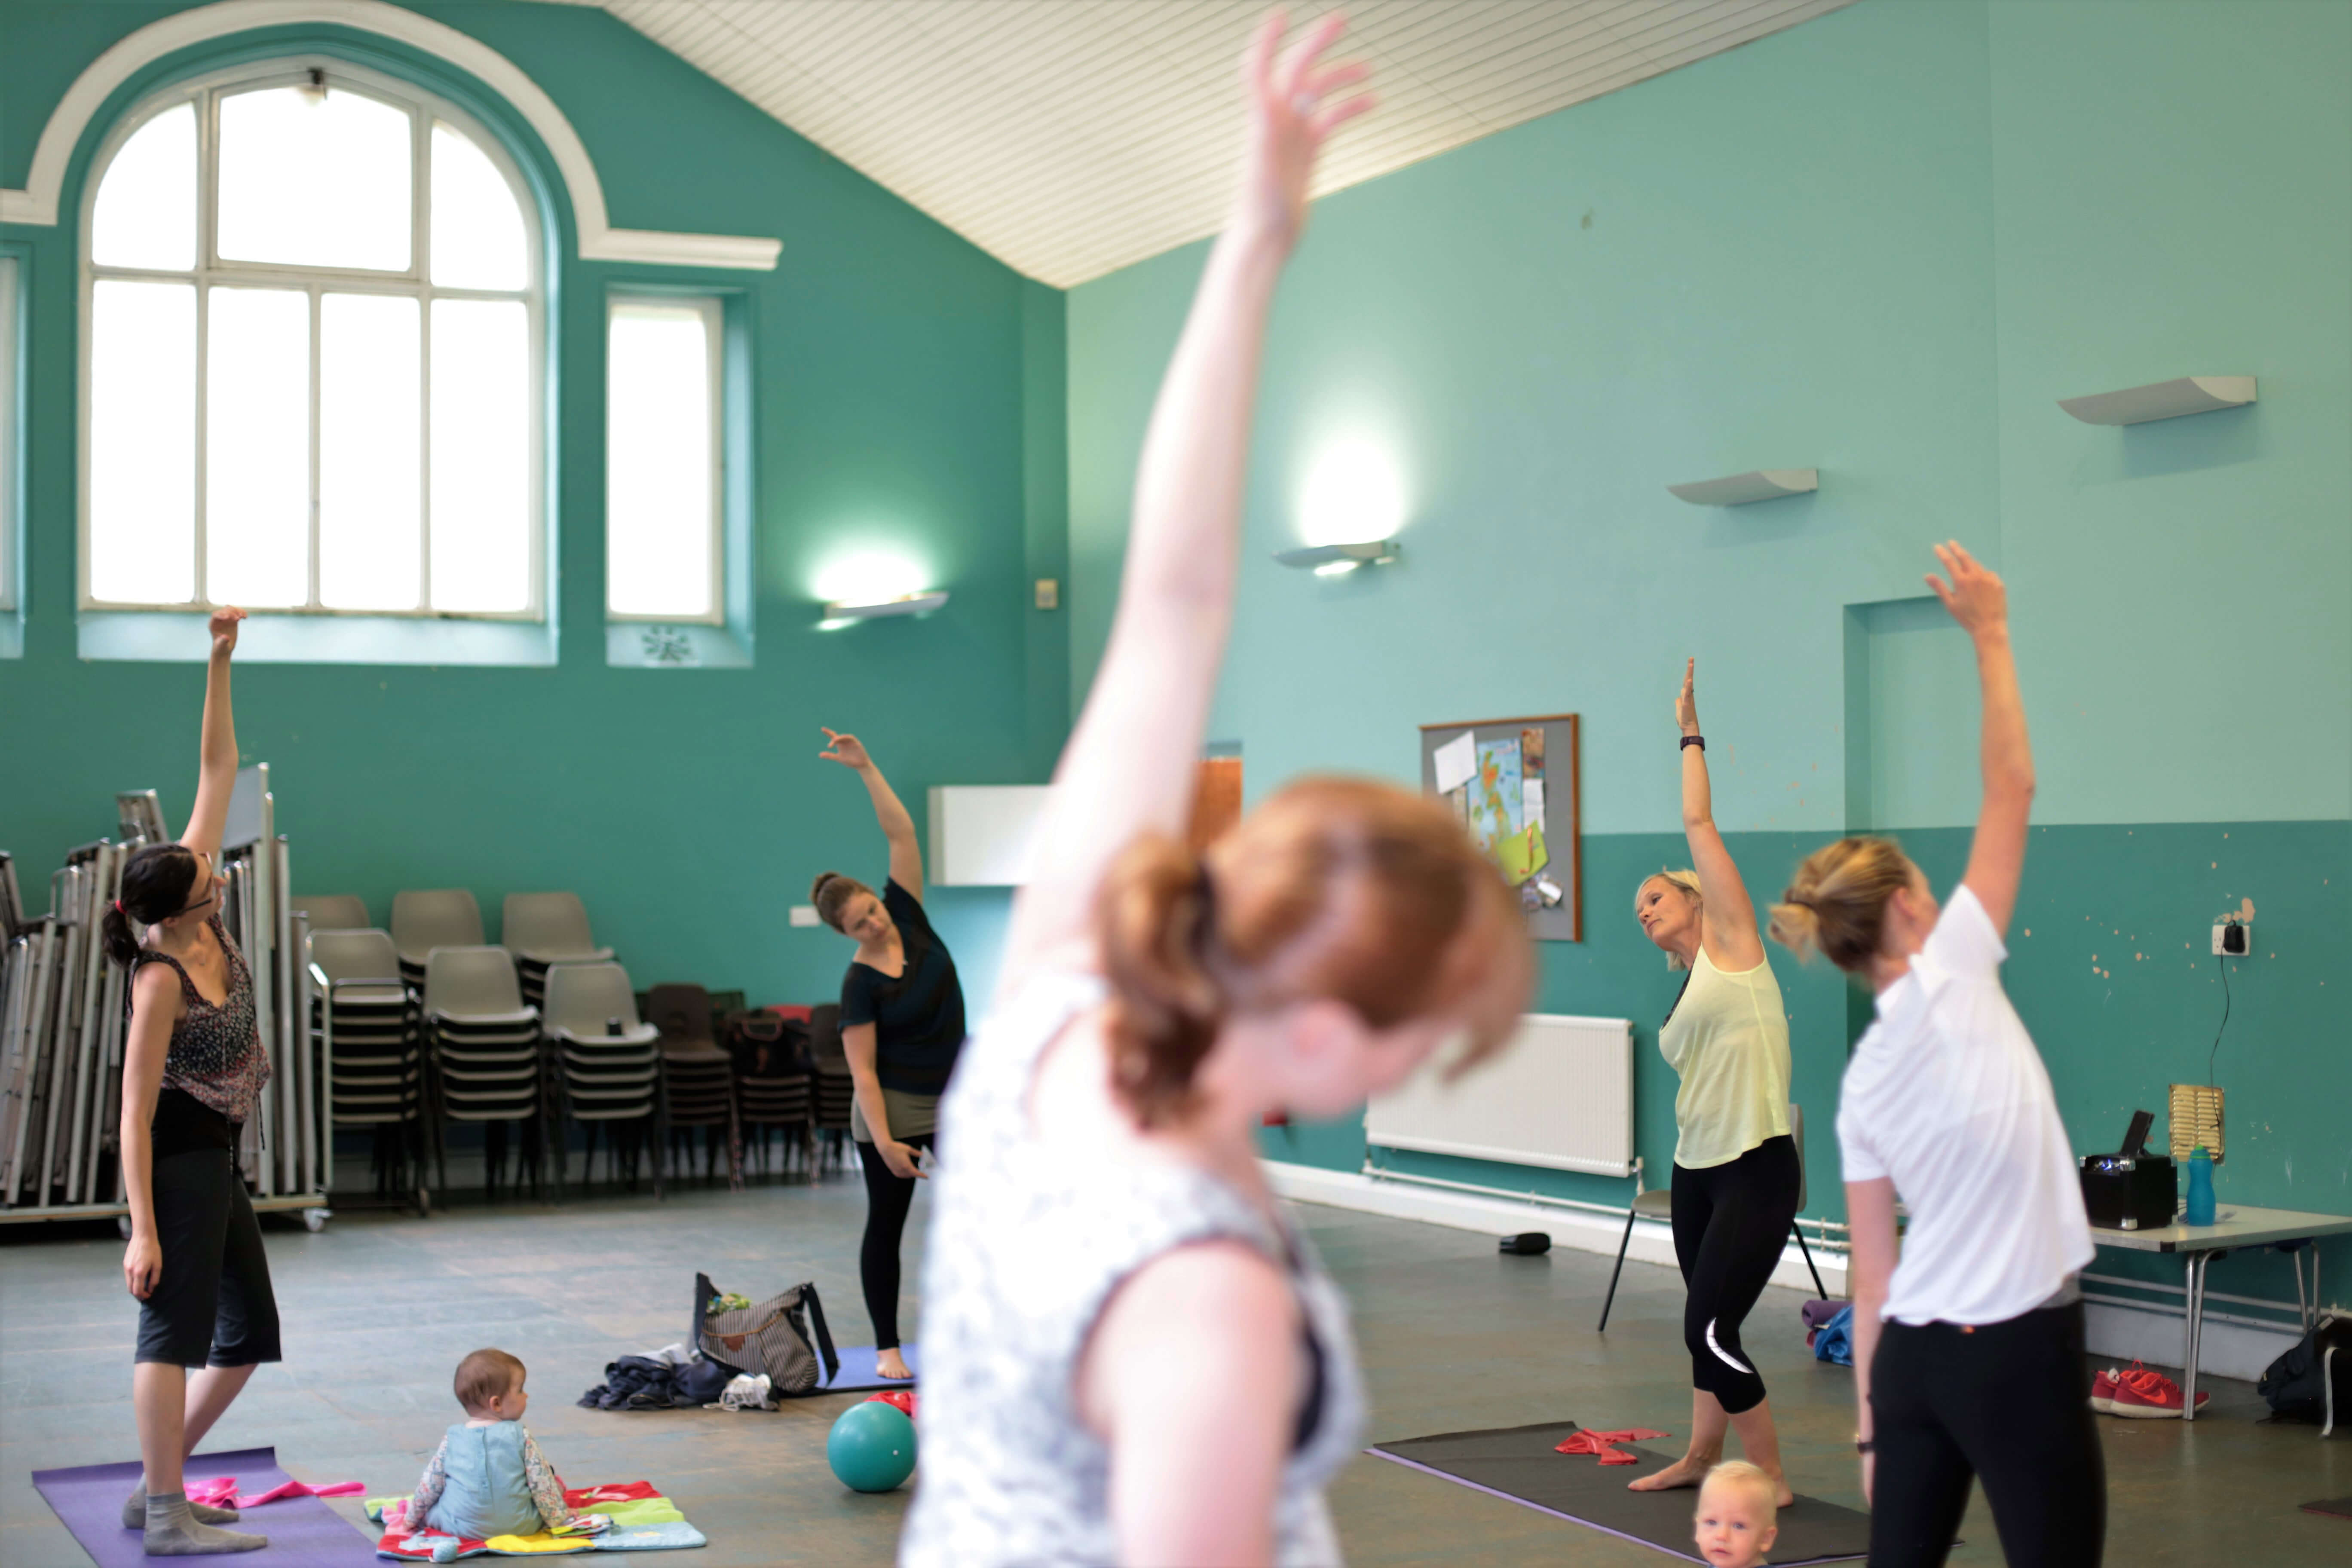 Pilates group shot of women with babies.